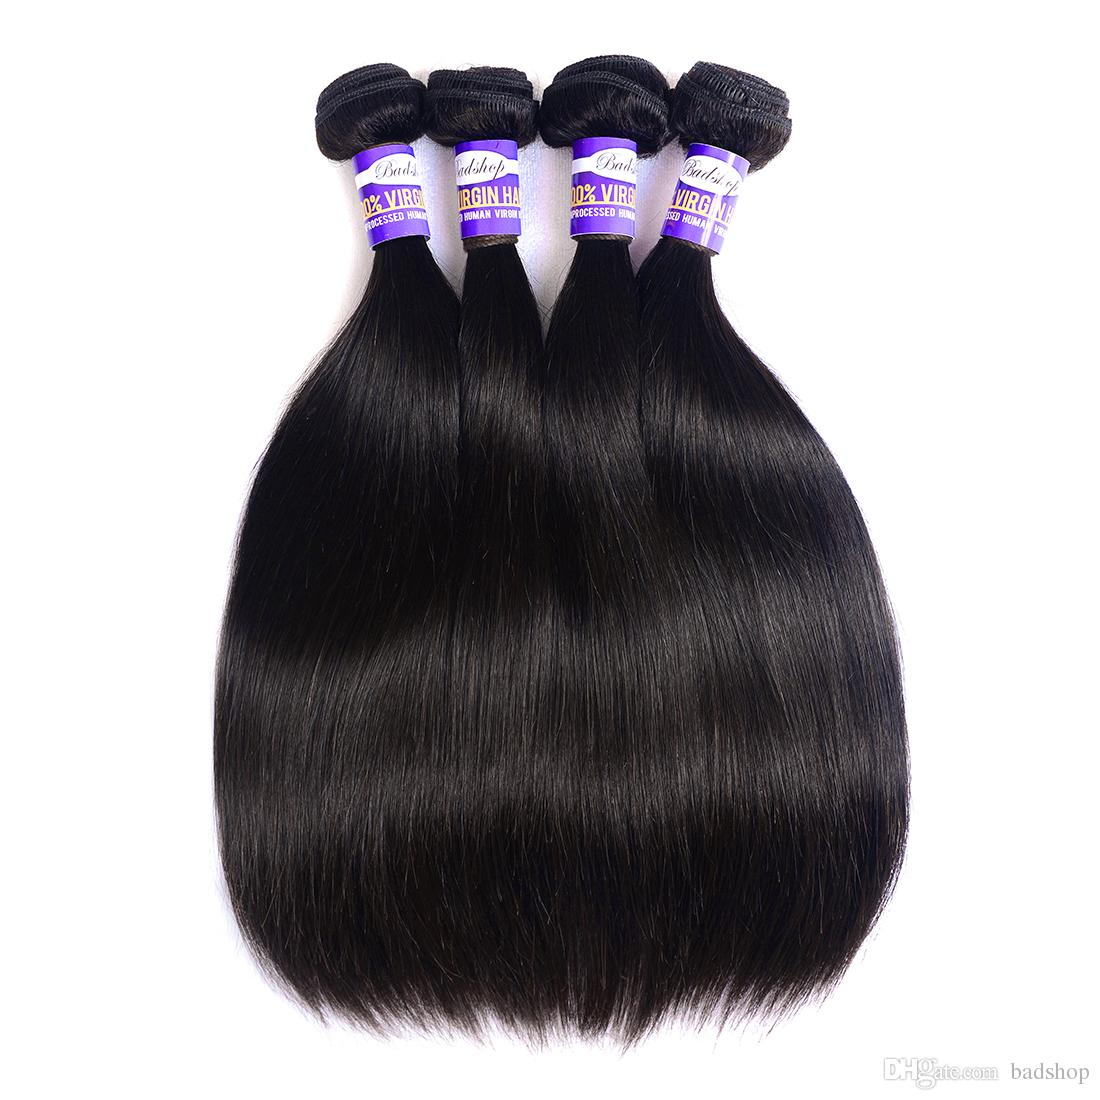 9A Brazilian Deep Wave 3 Bundles with Lace Closure Frontal Brazilian Kinky Curly Water Body Loose Wave Straight Weave Human Hair Extensions